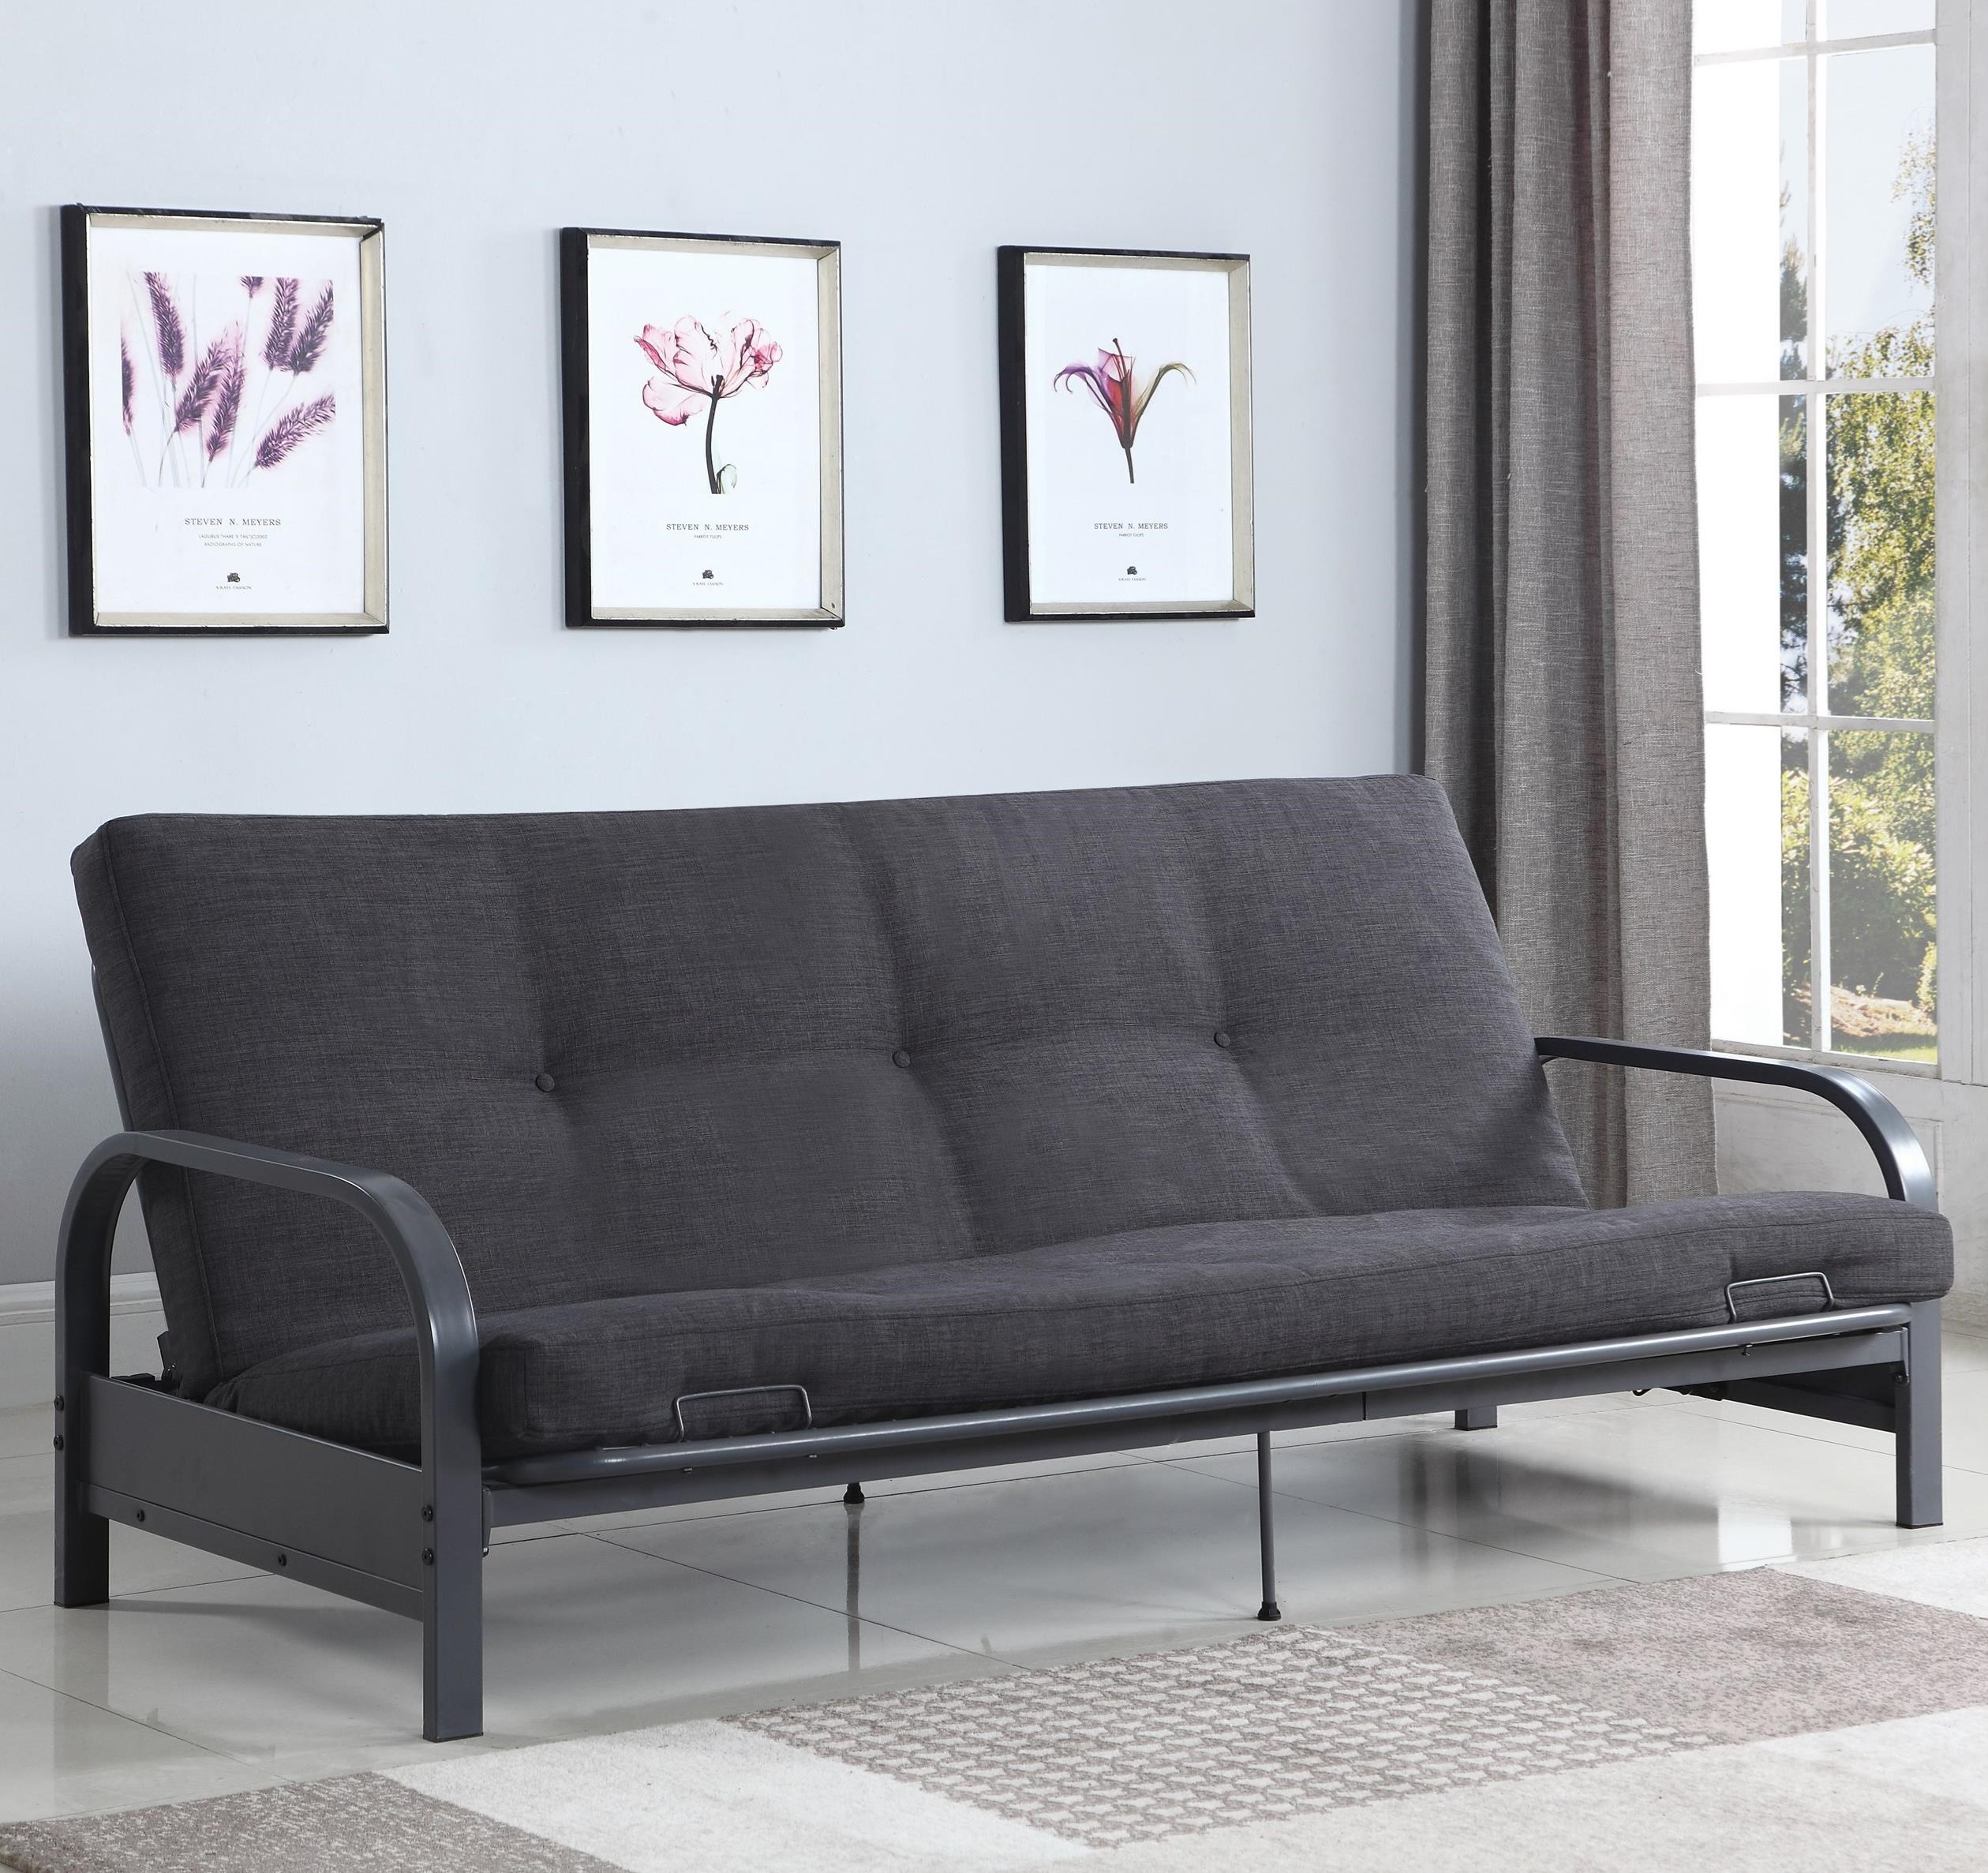 Sofa Beds and Futons Futon - Mattress Not Included  by Coaster at Northeast Factory Direct